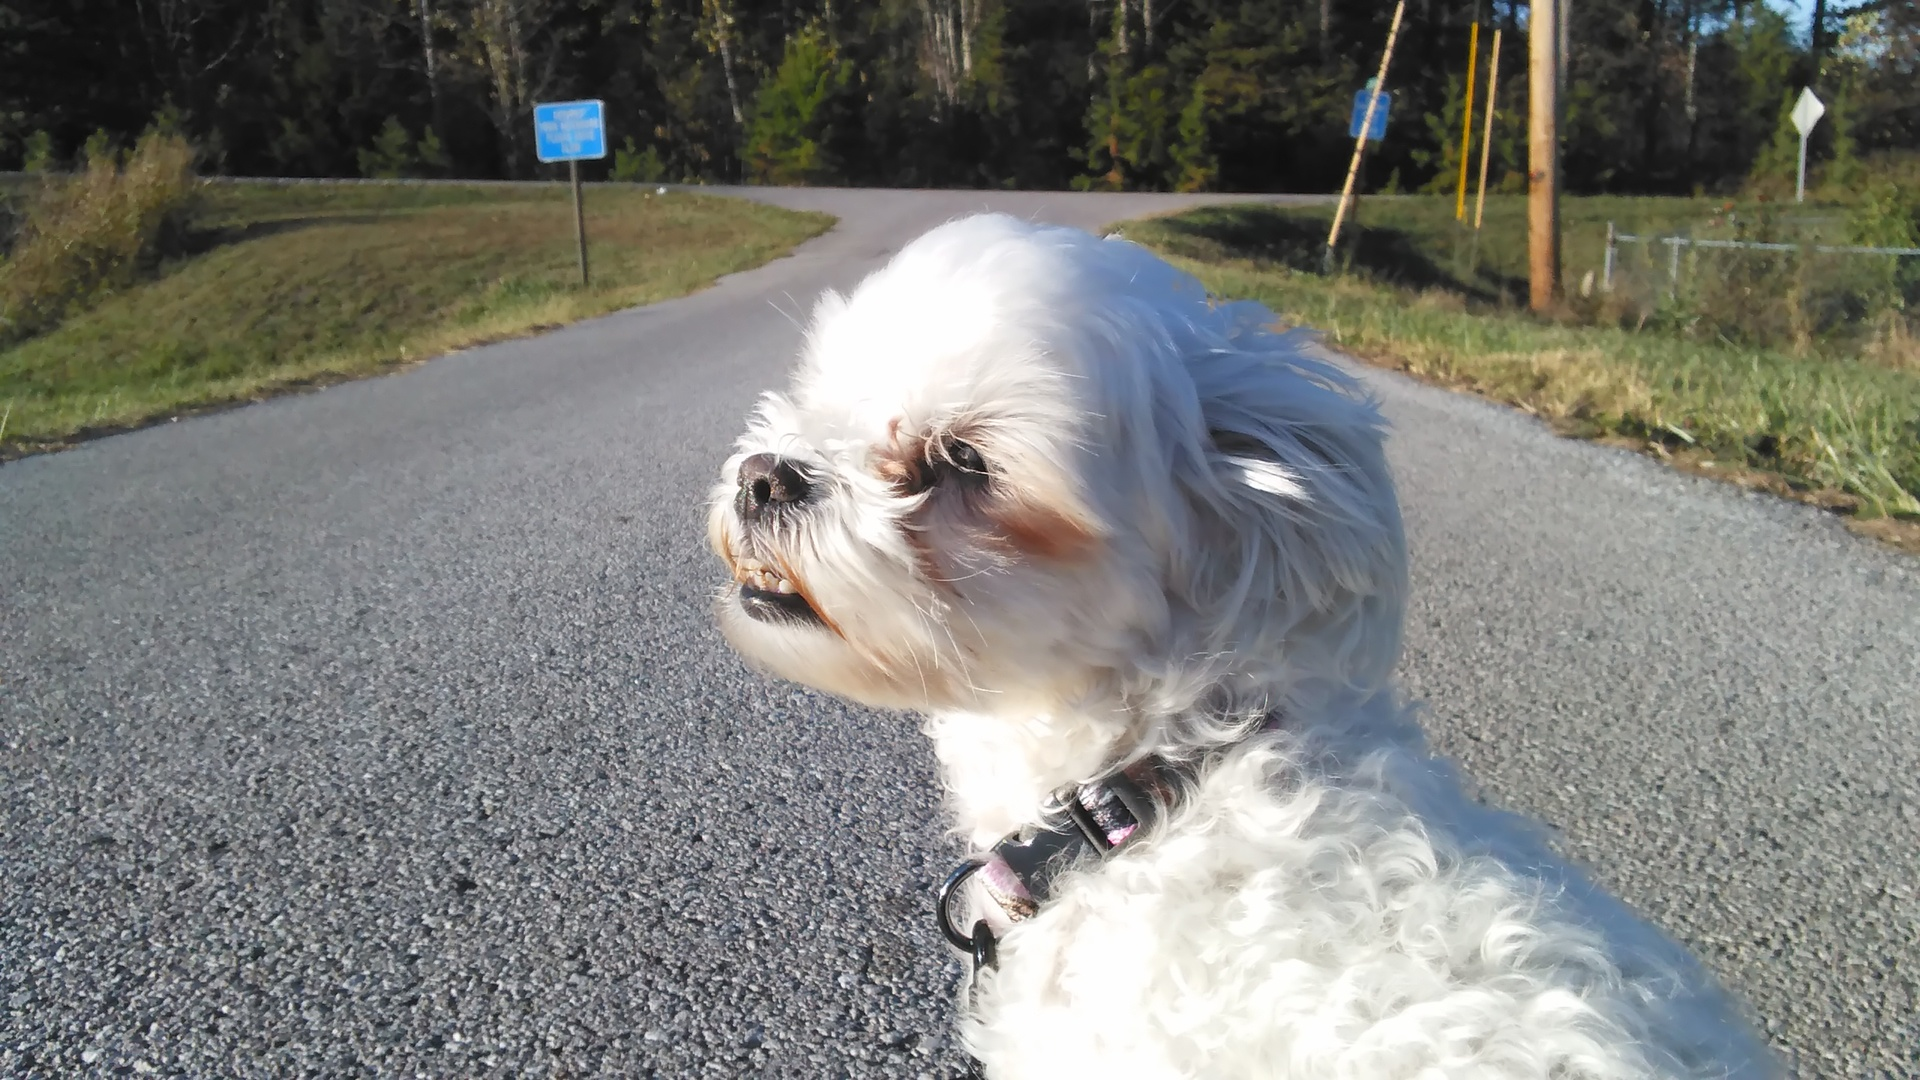 Road Maltese | codenamesailorearth, canine, cute, daytime